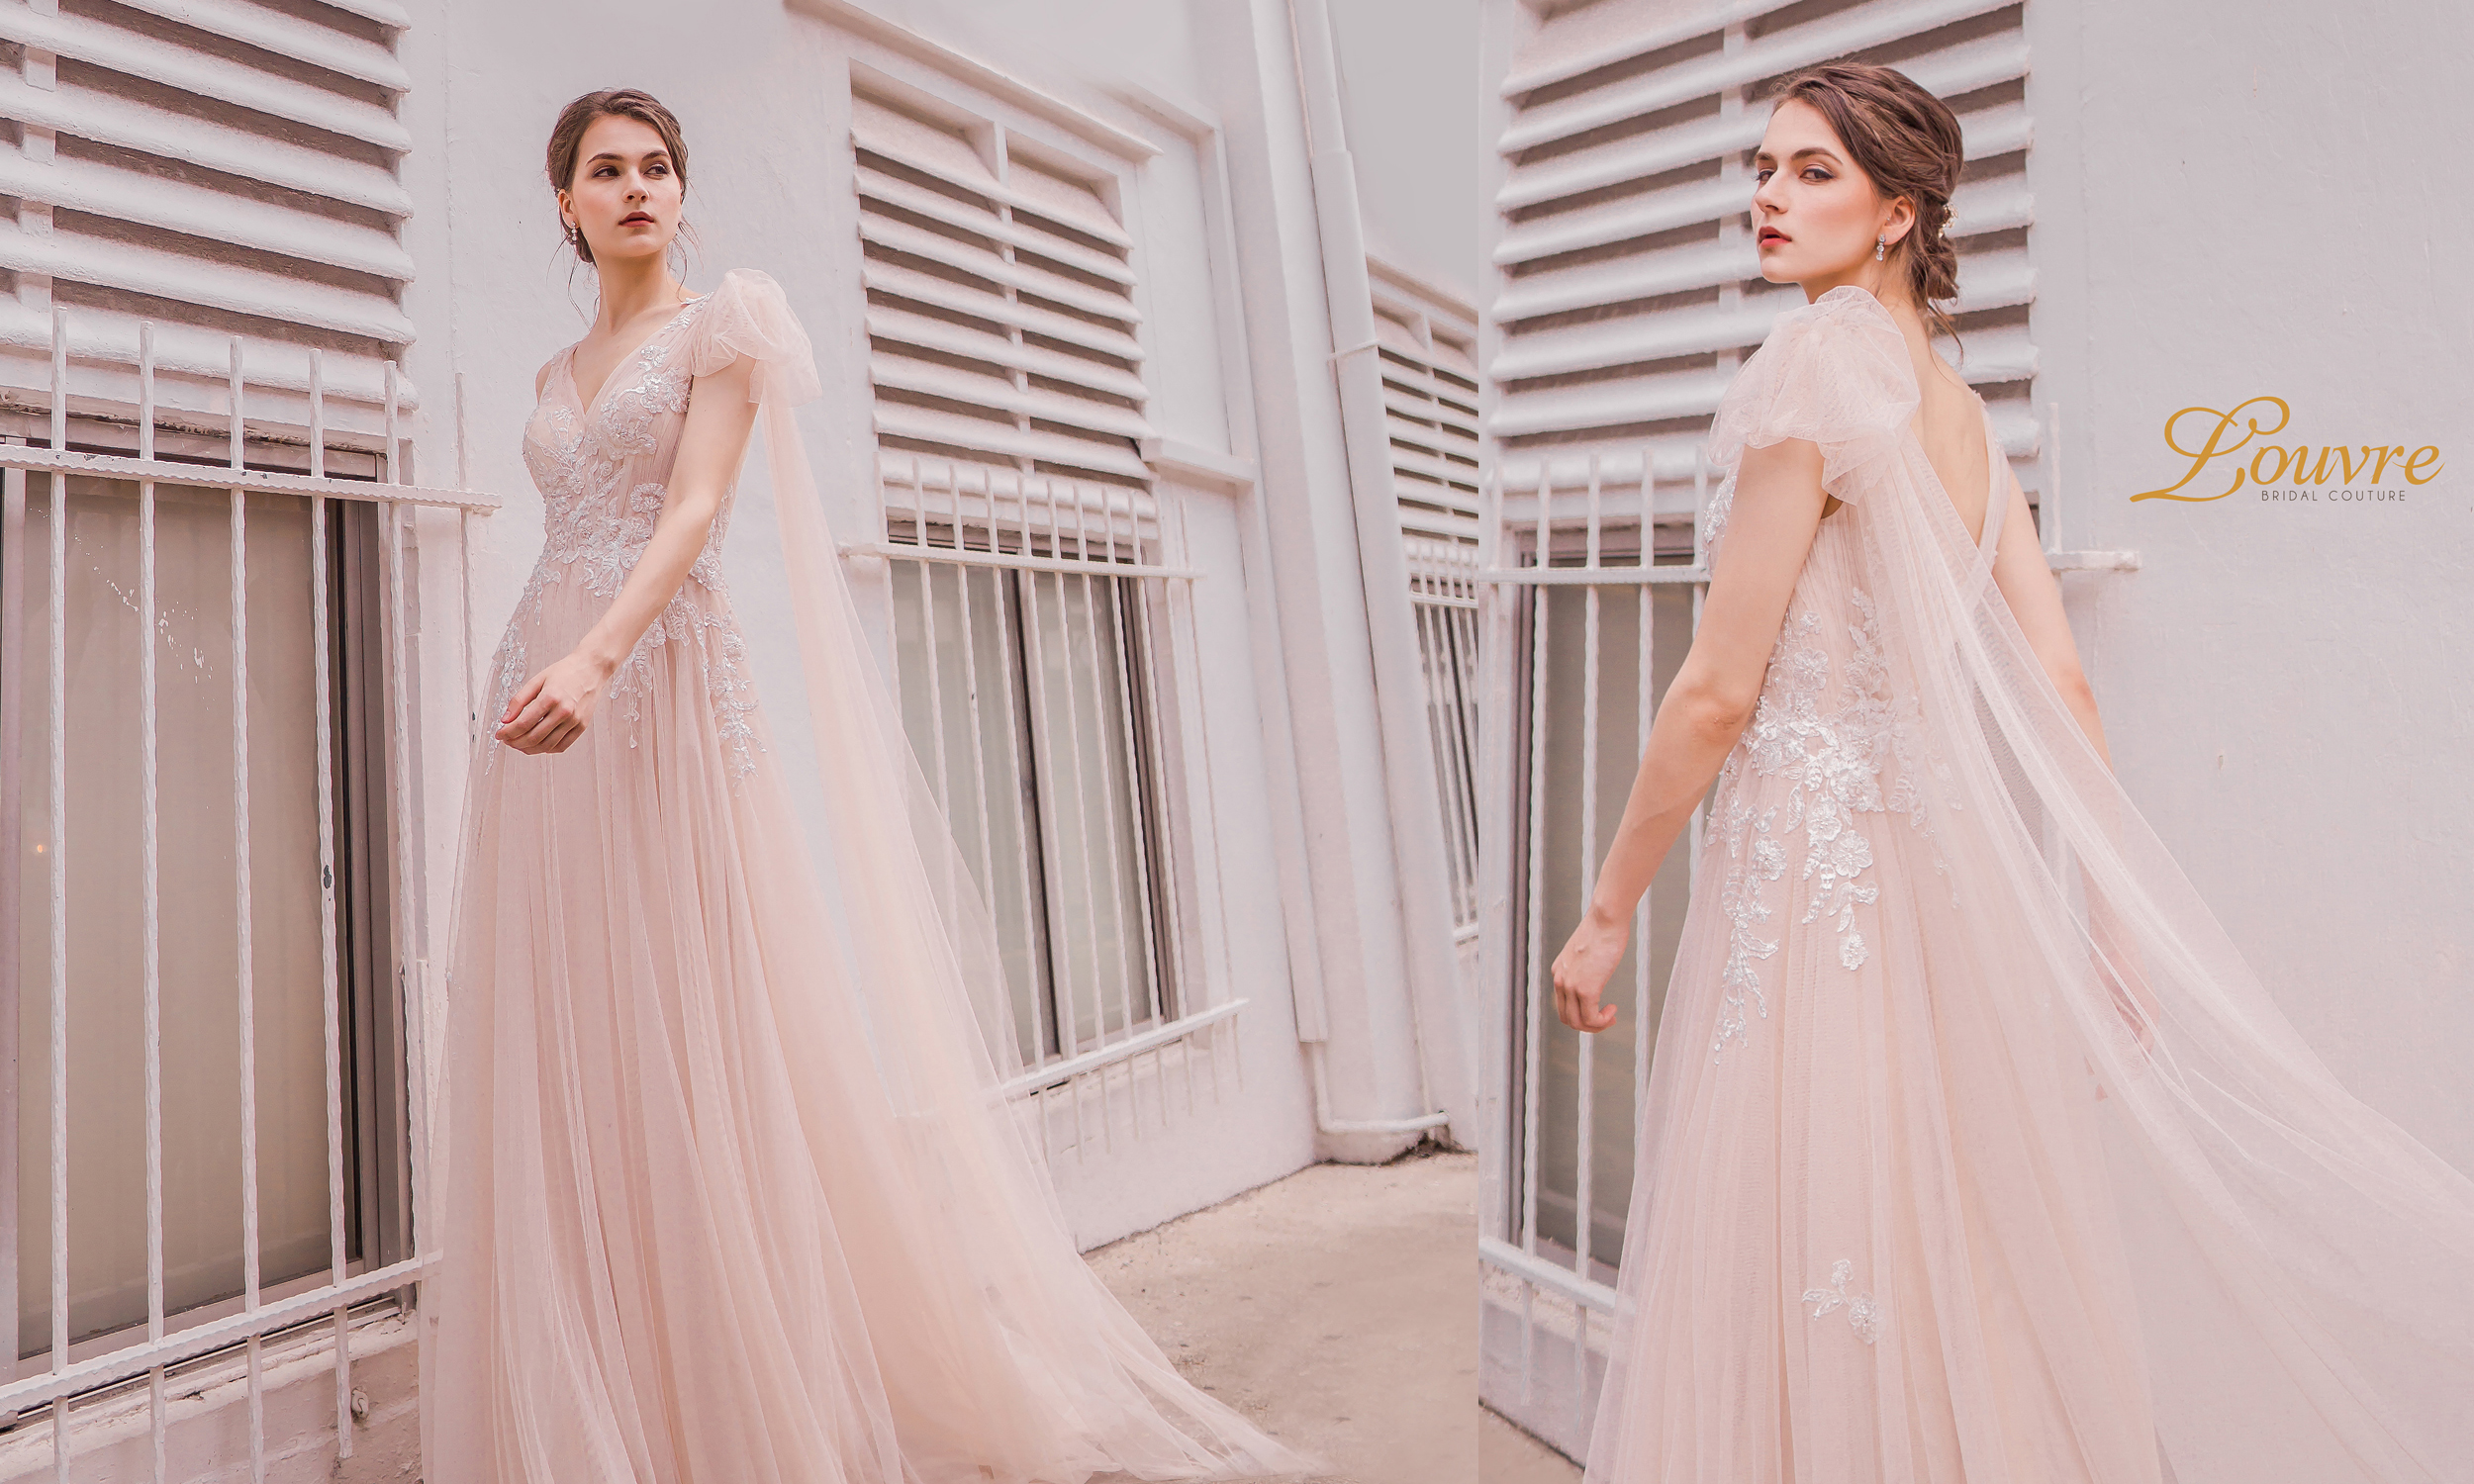 Wedding Gown Singapore -2019 Top 5 Fashion Trends to Highlight